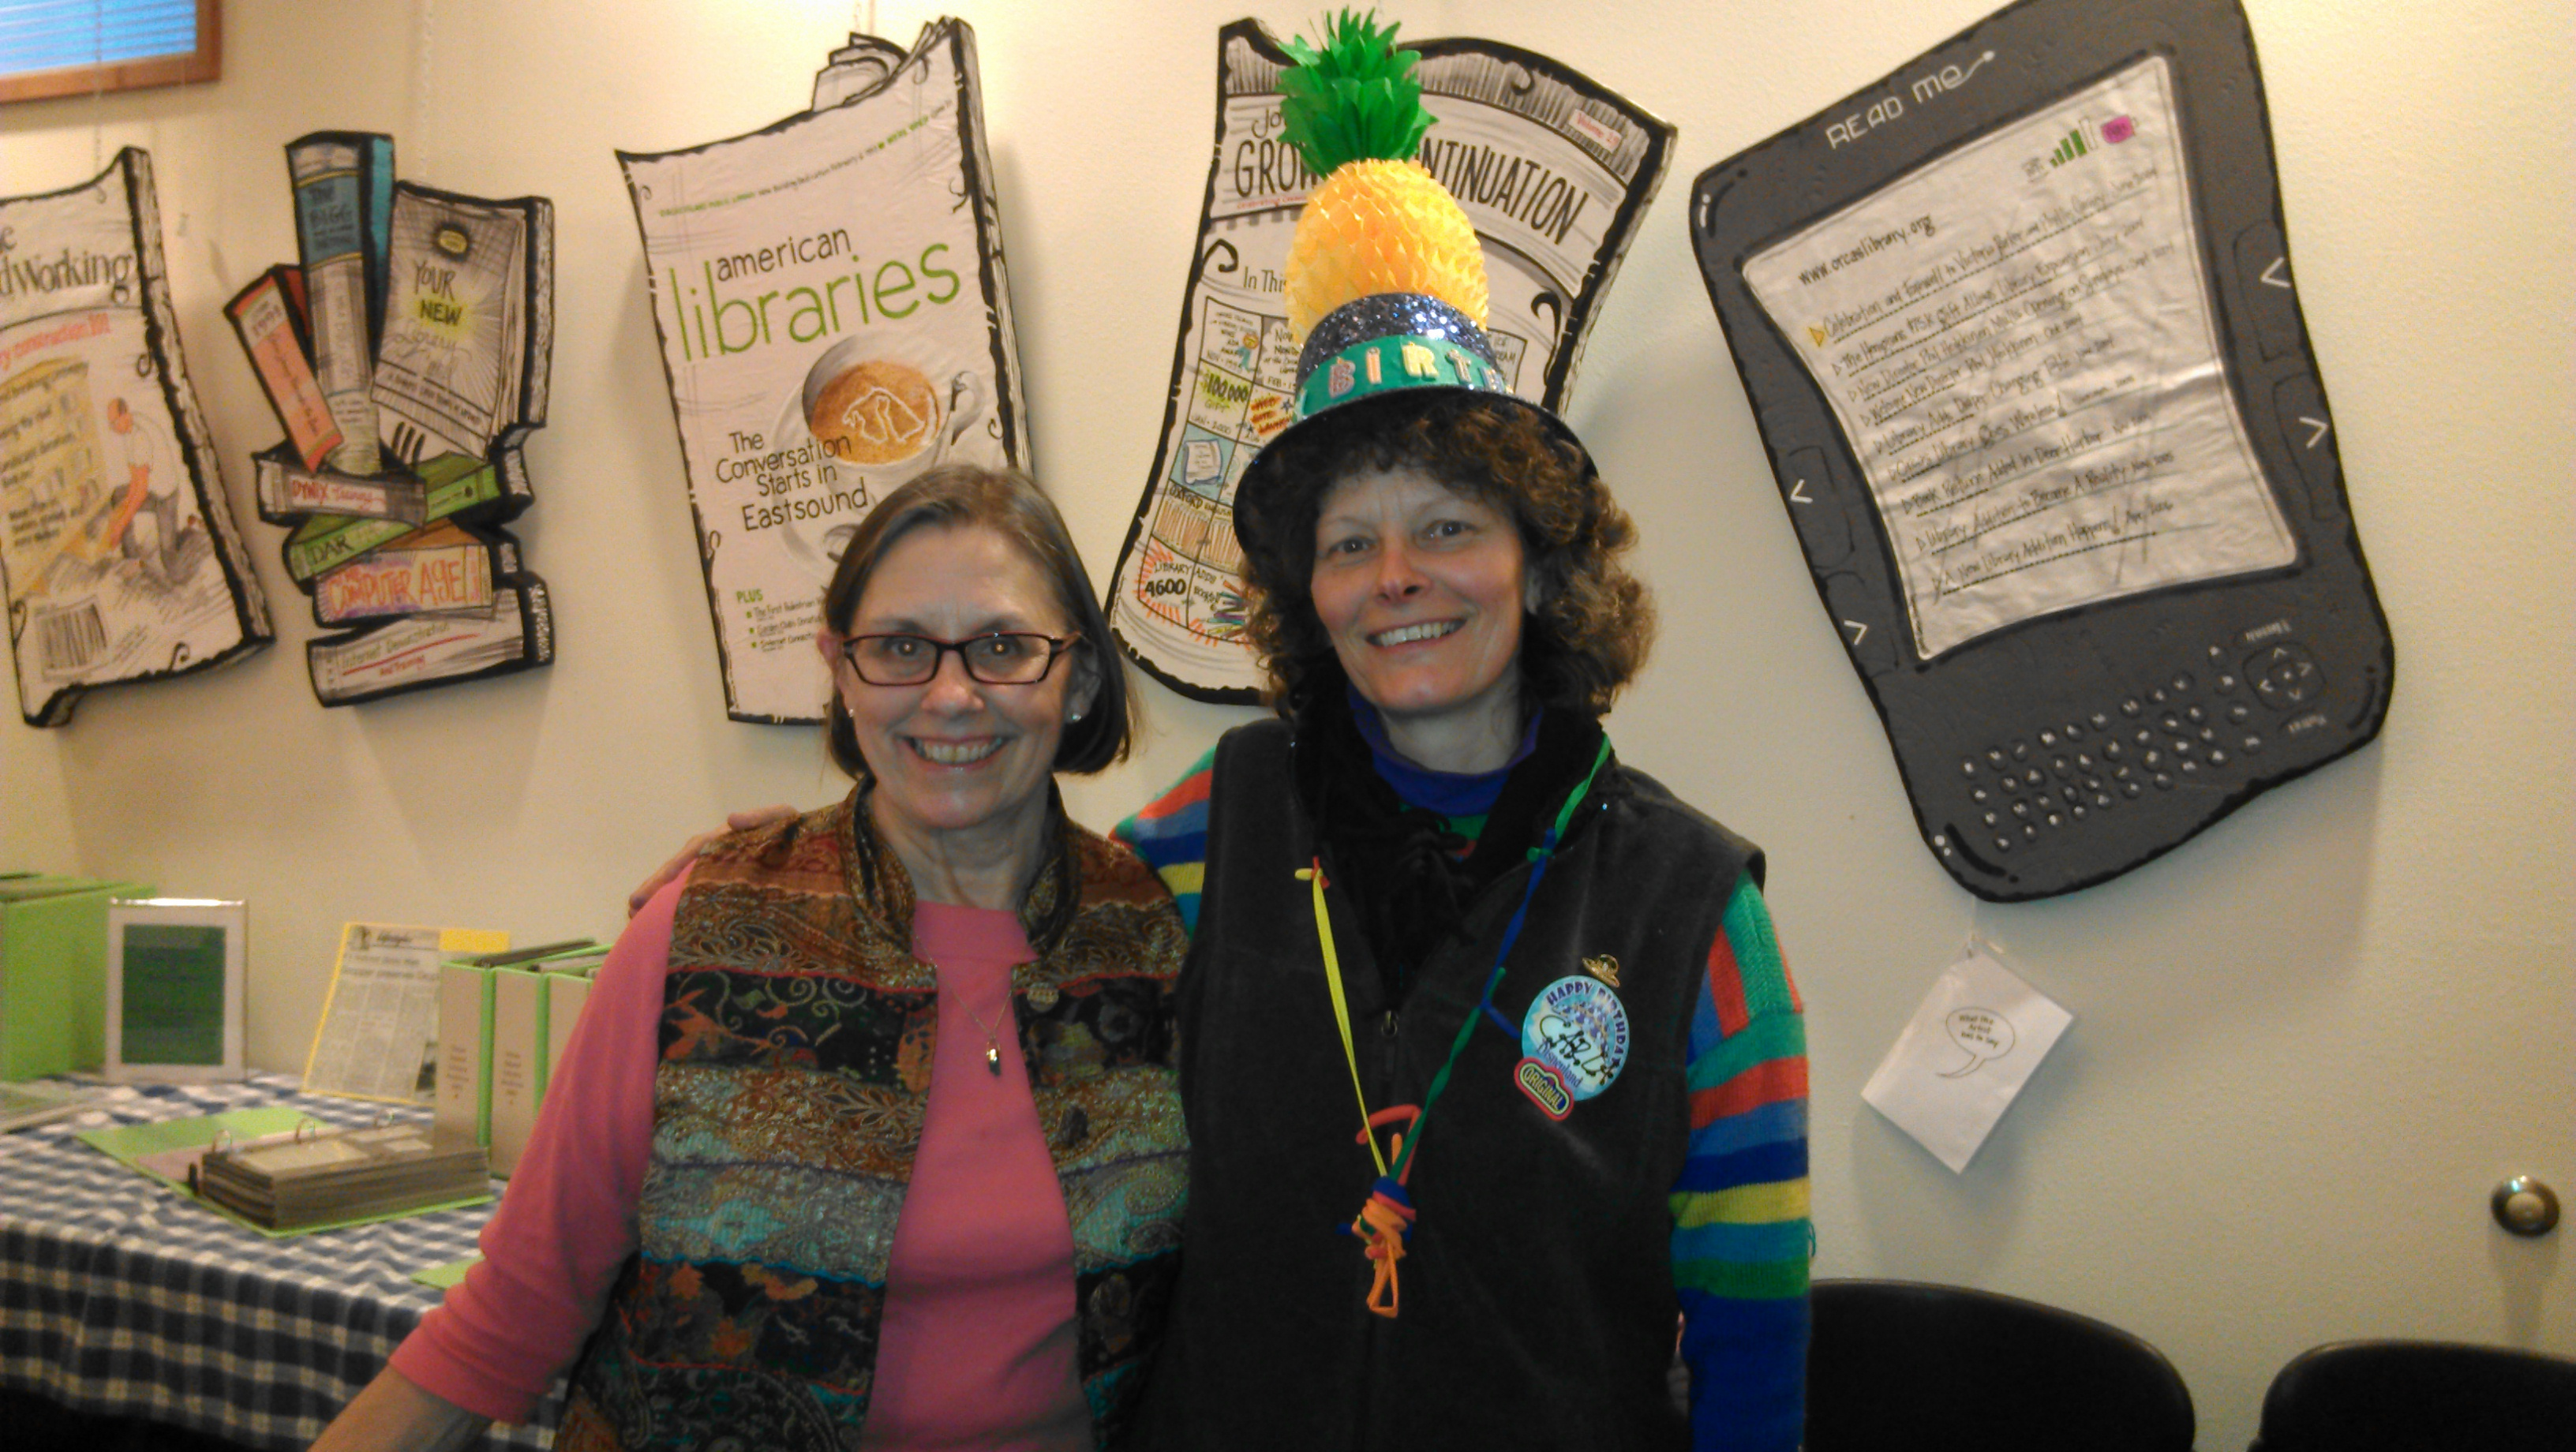 Marcia Spees and Carla Stanley at the Orcas Public Library party